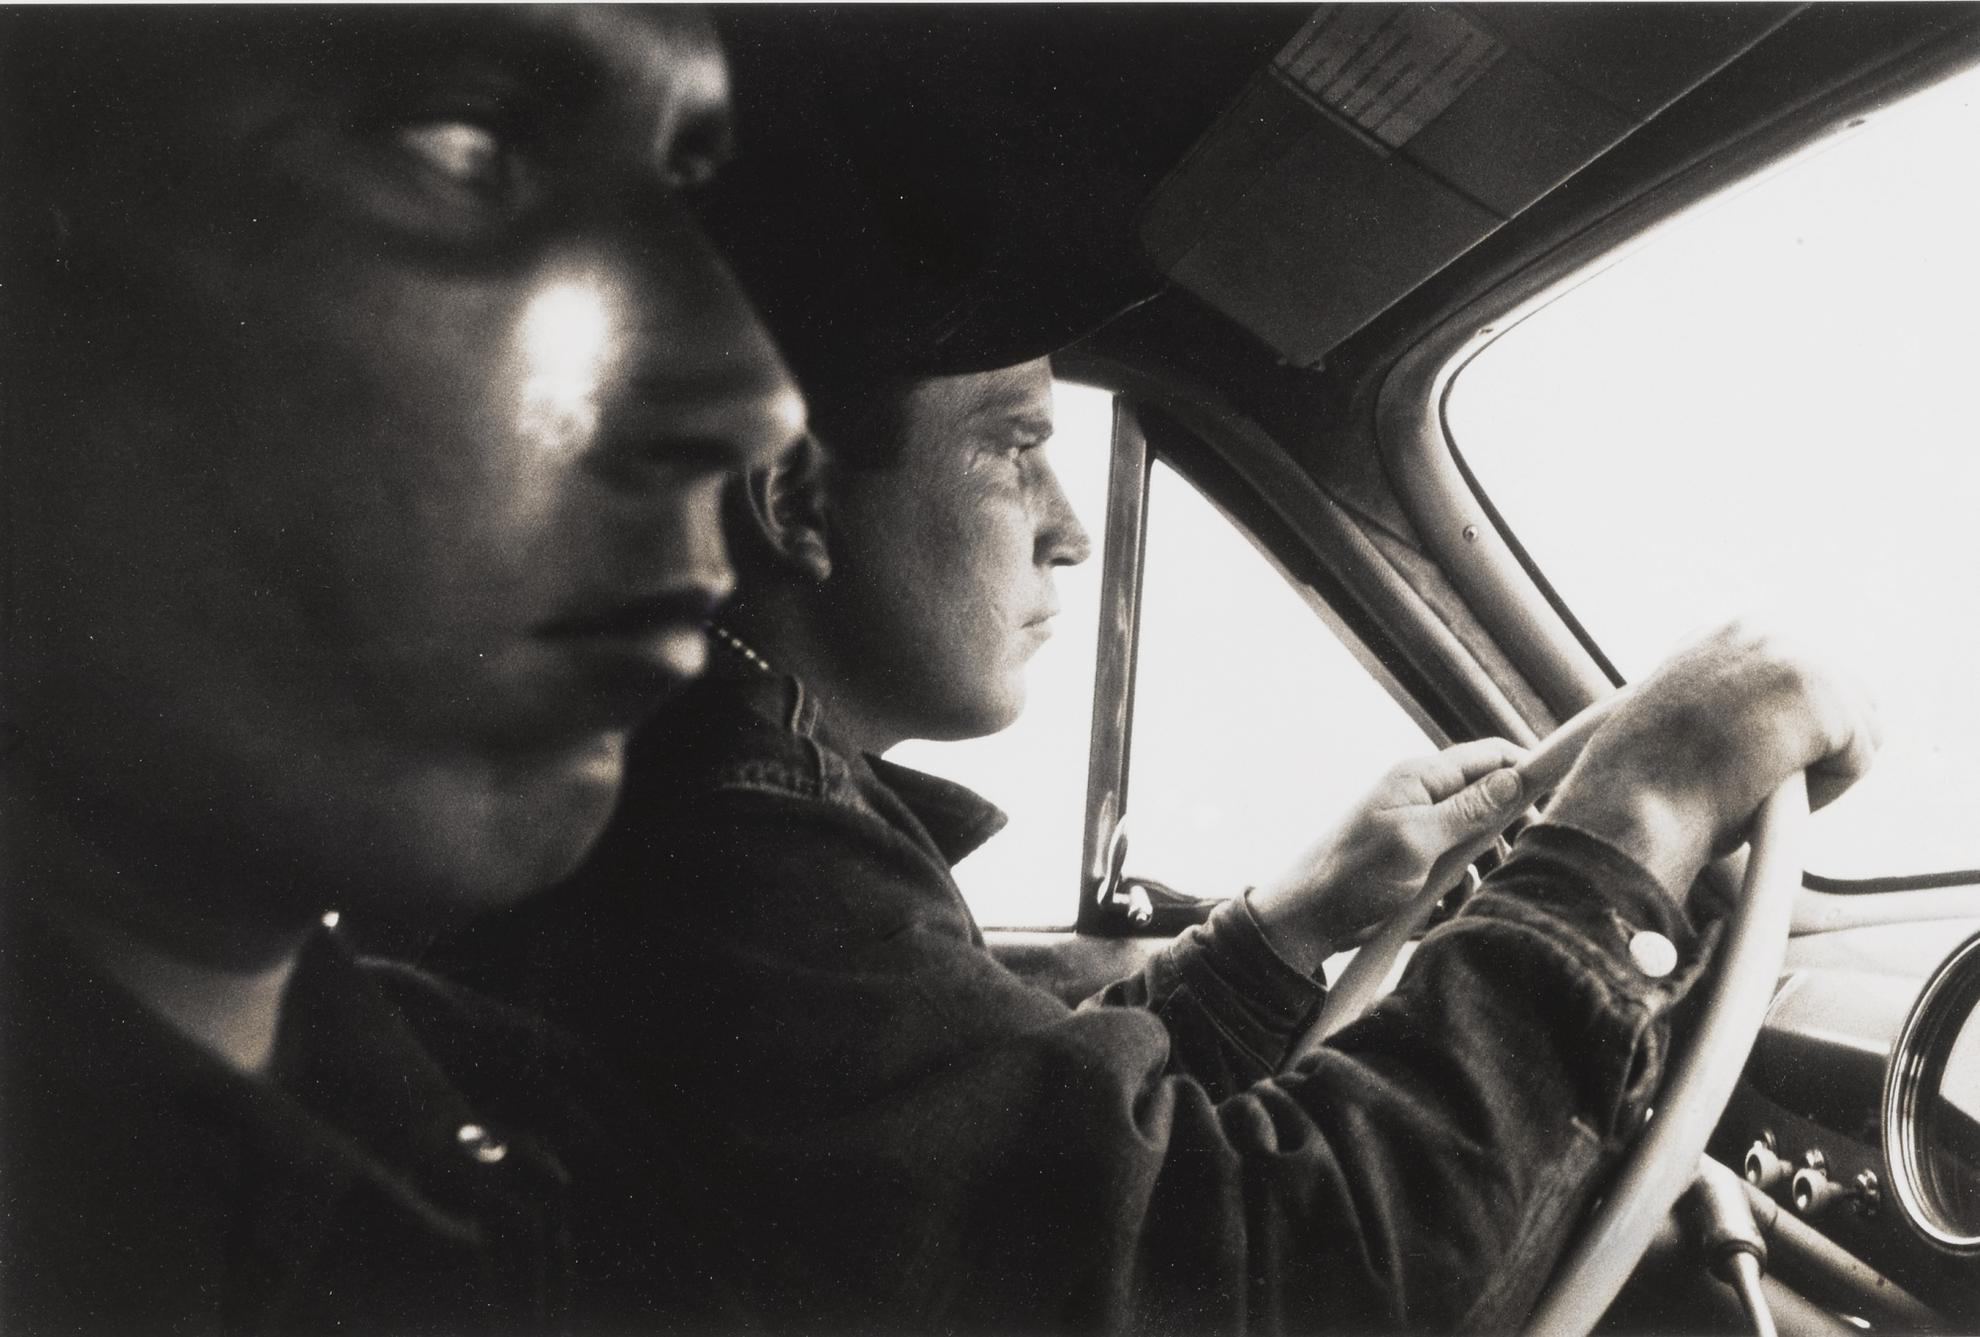 Robert Frank-U. S. 91, Leaving Blackfoot, Idaho-1956